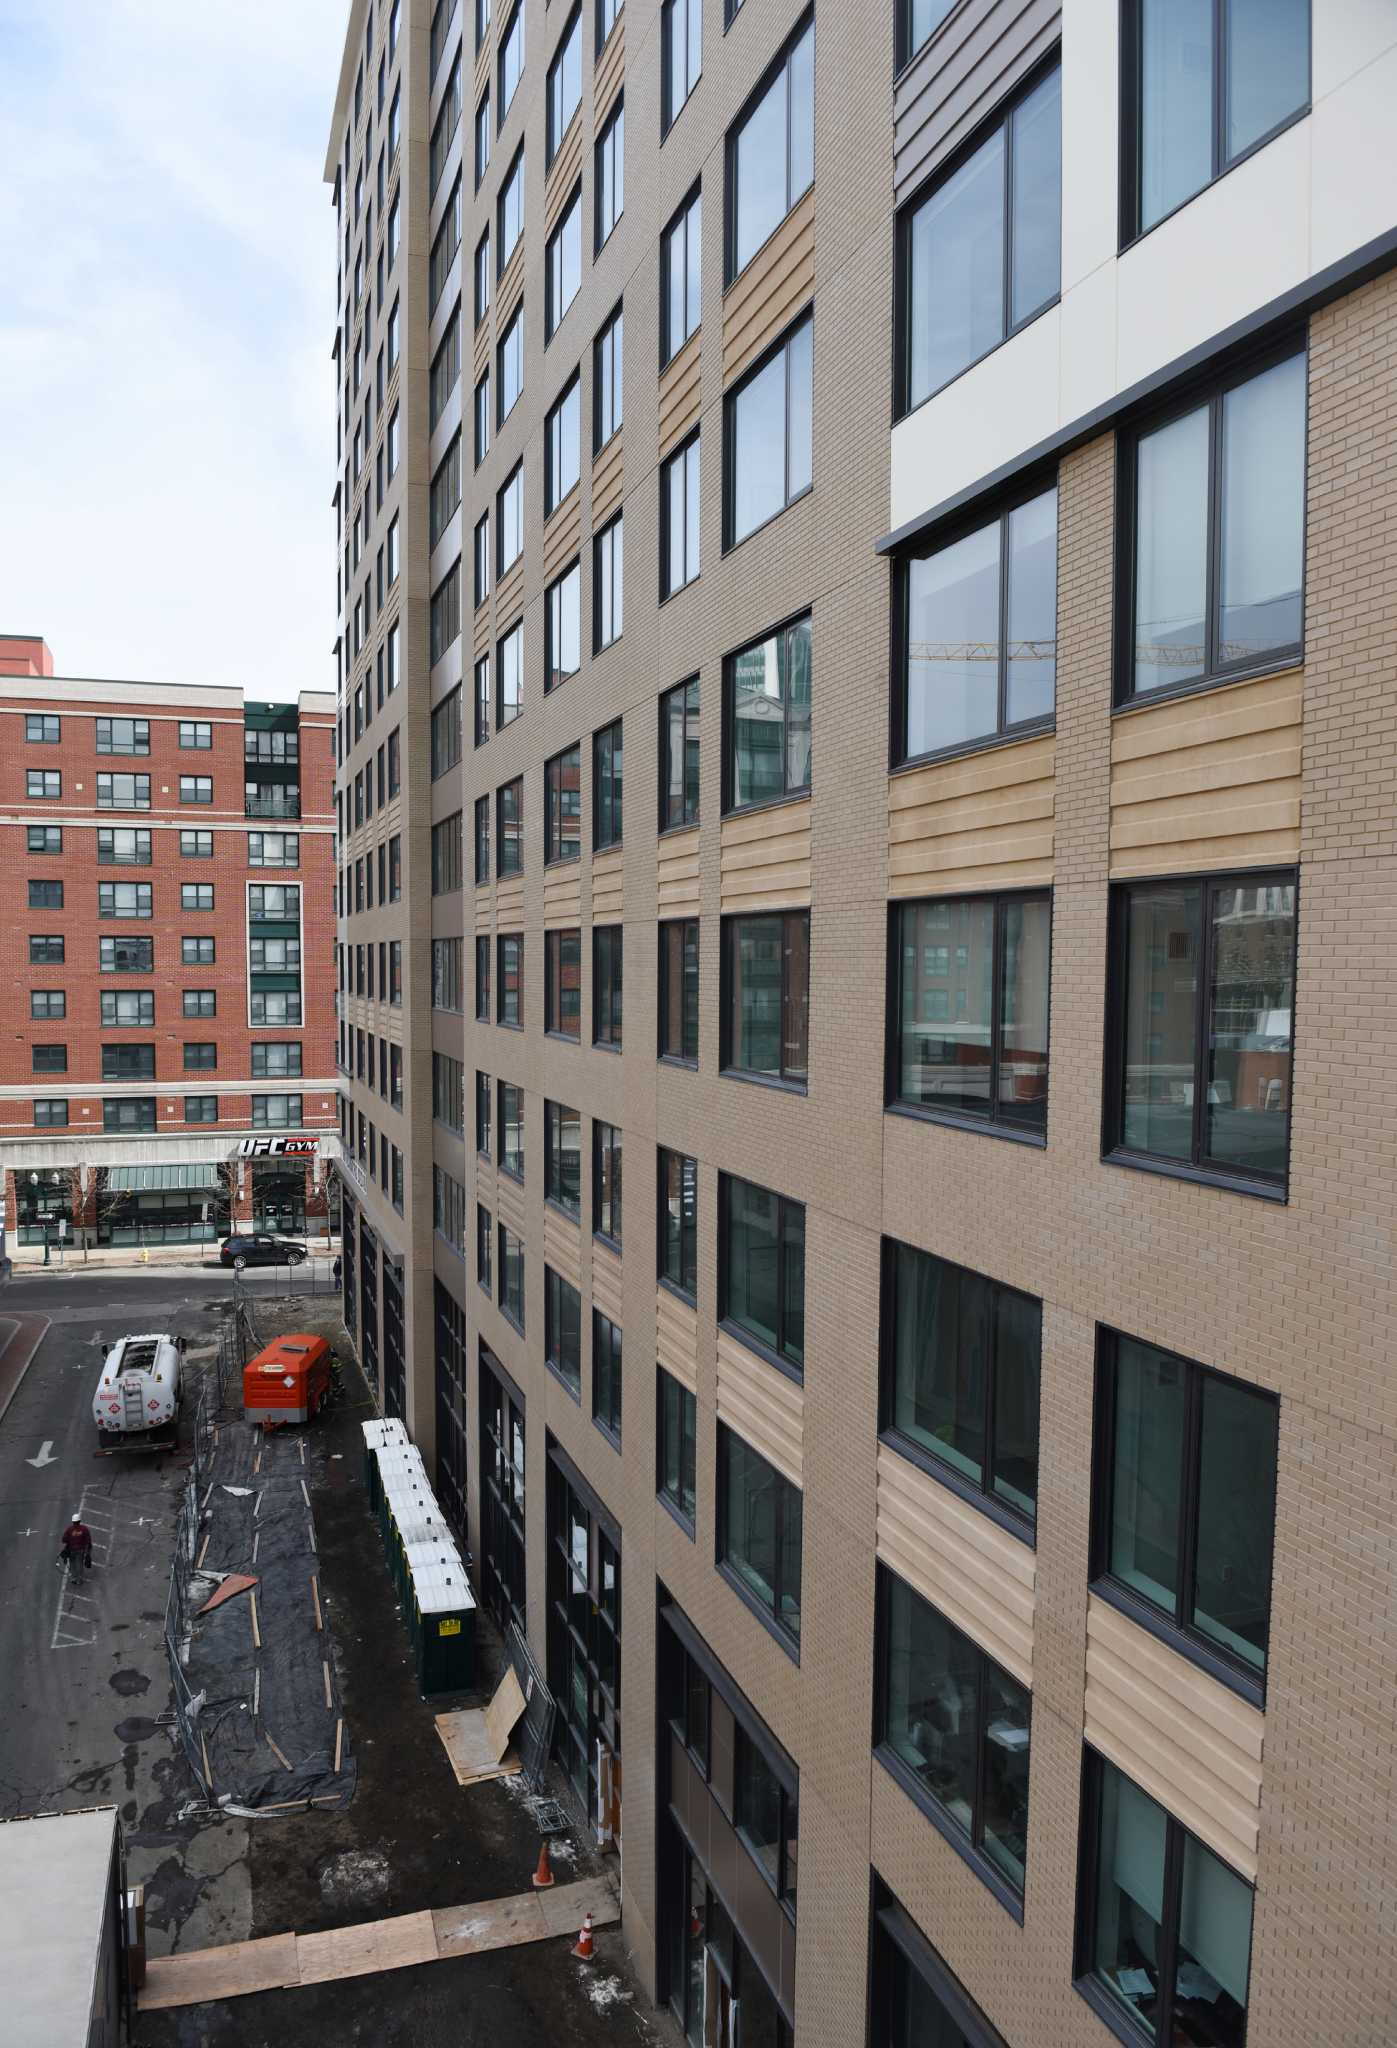 Downtown Stamford apartments sell for $100 million StamfordAdvocate